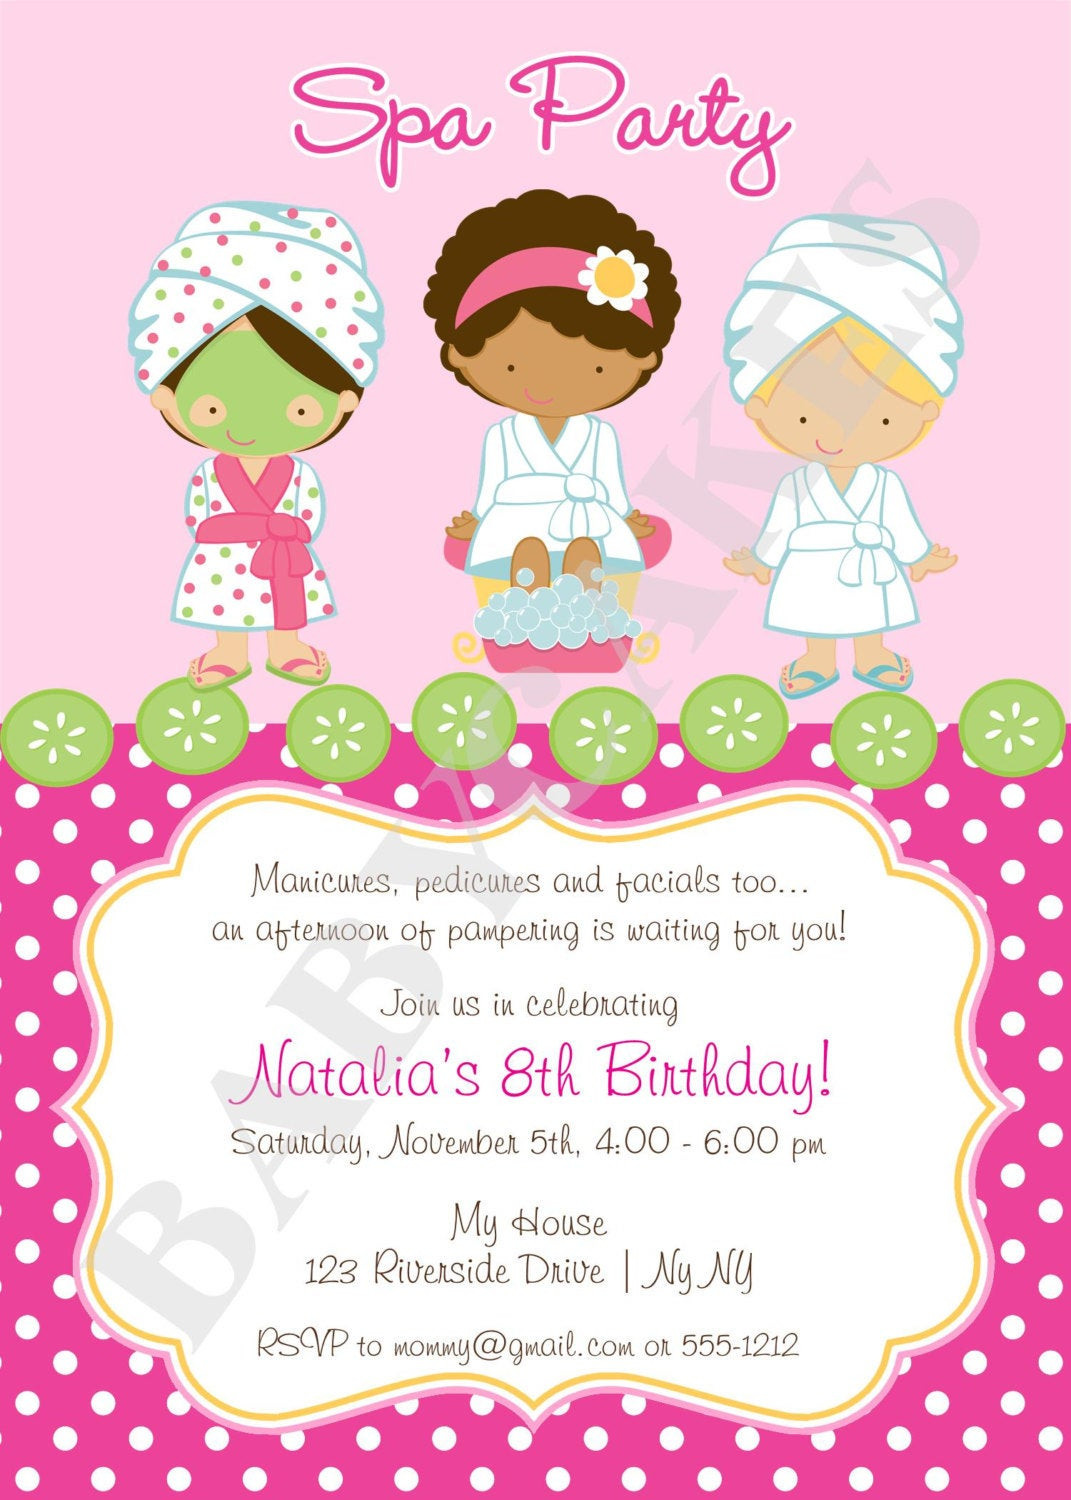 Best ideas about Spa Birthday Invitations . Save or Pin Spa Party Invitation DIY Print Your Own Matching by Now.